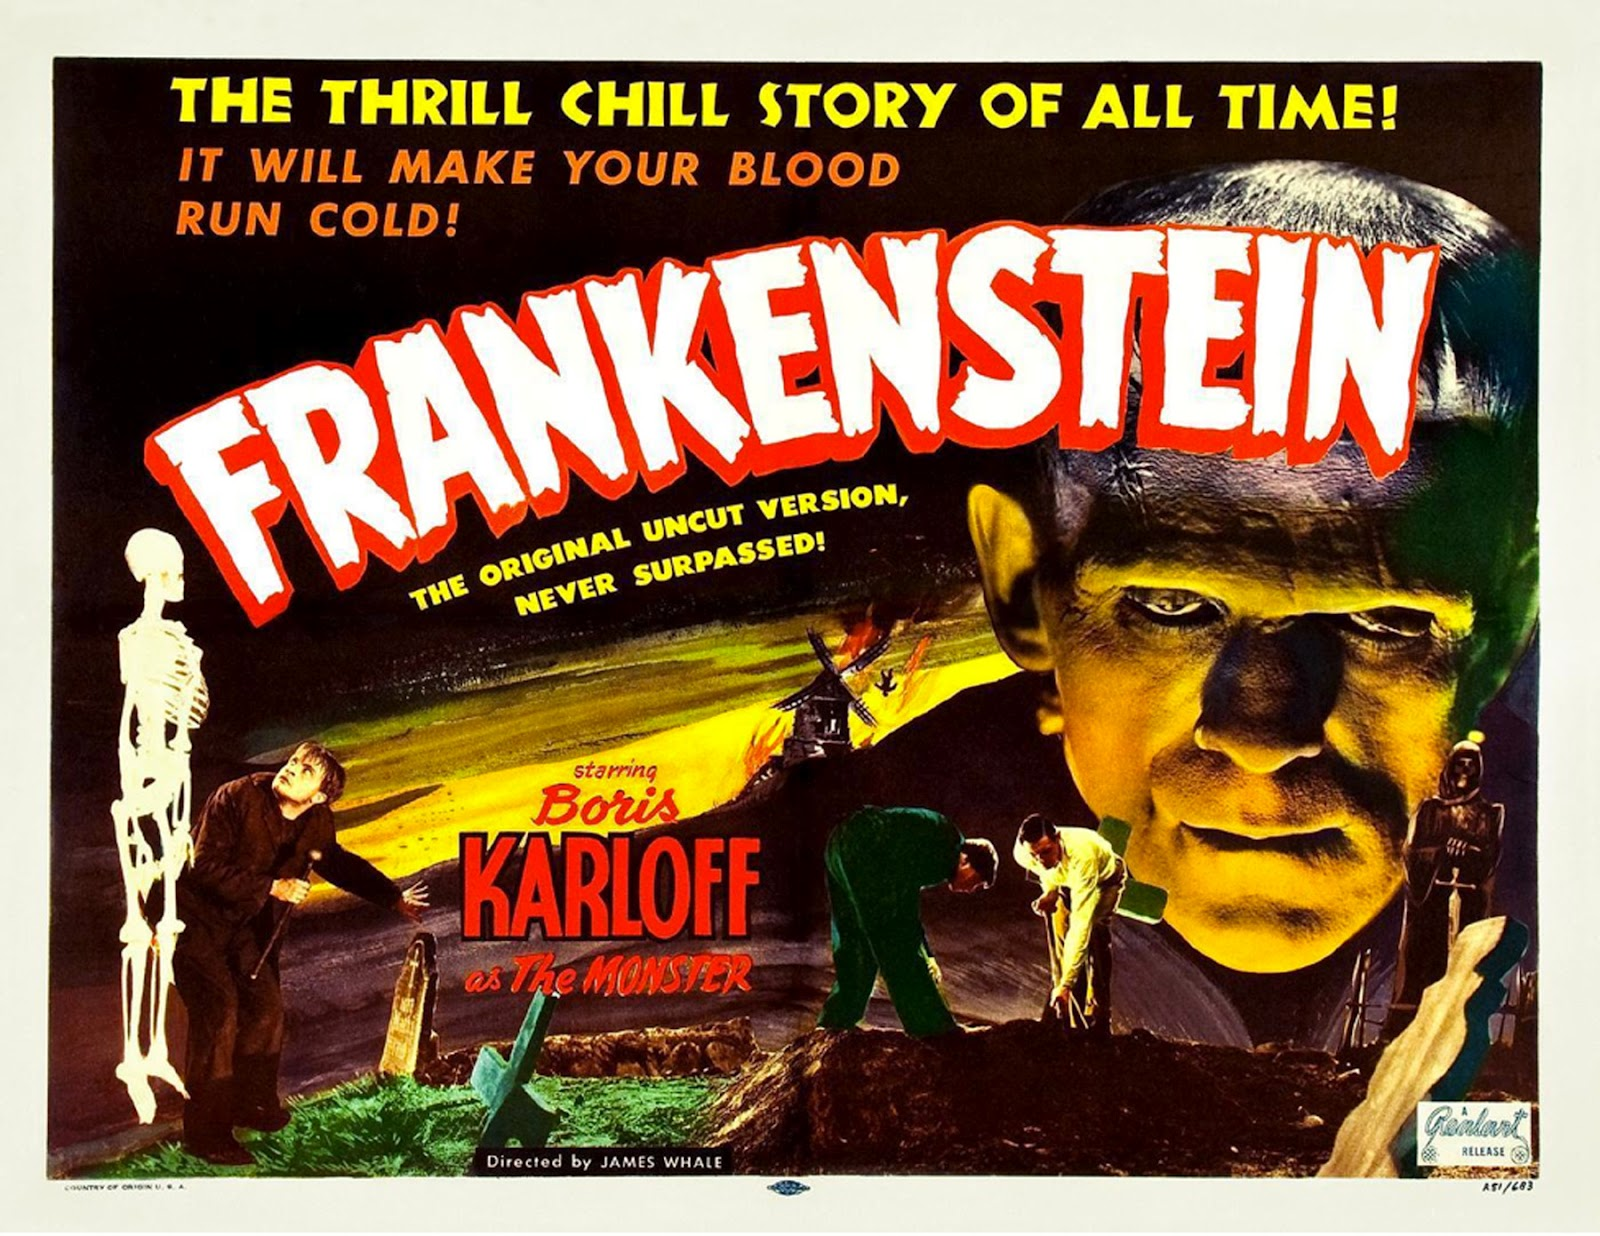 frankenstein 1931 poster Wallpaper and Background Image ...